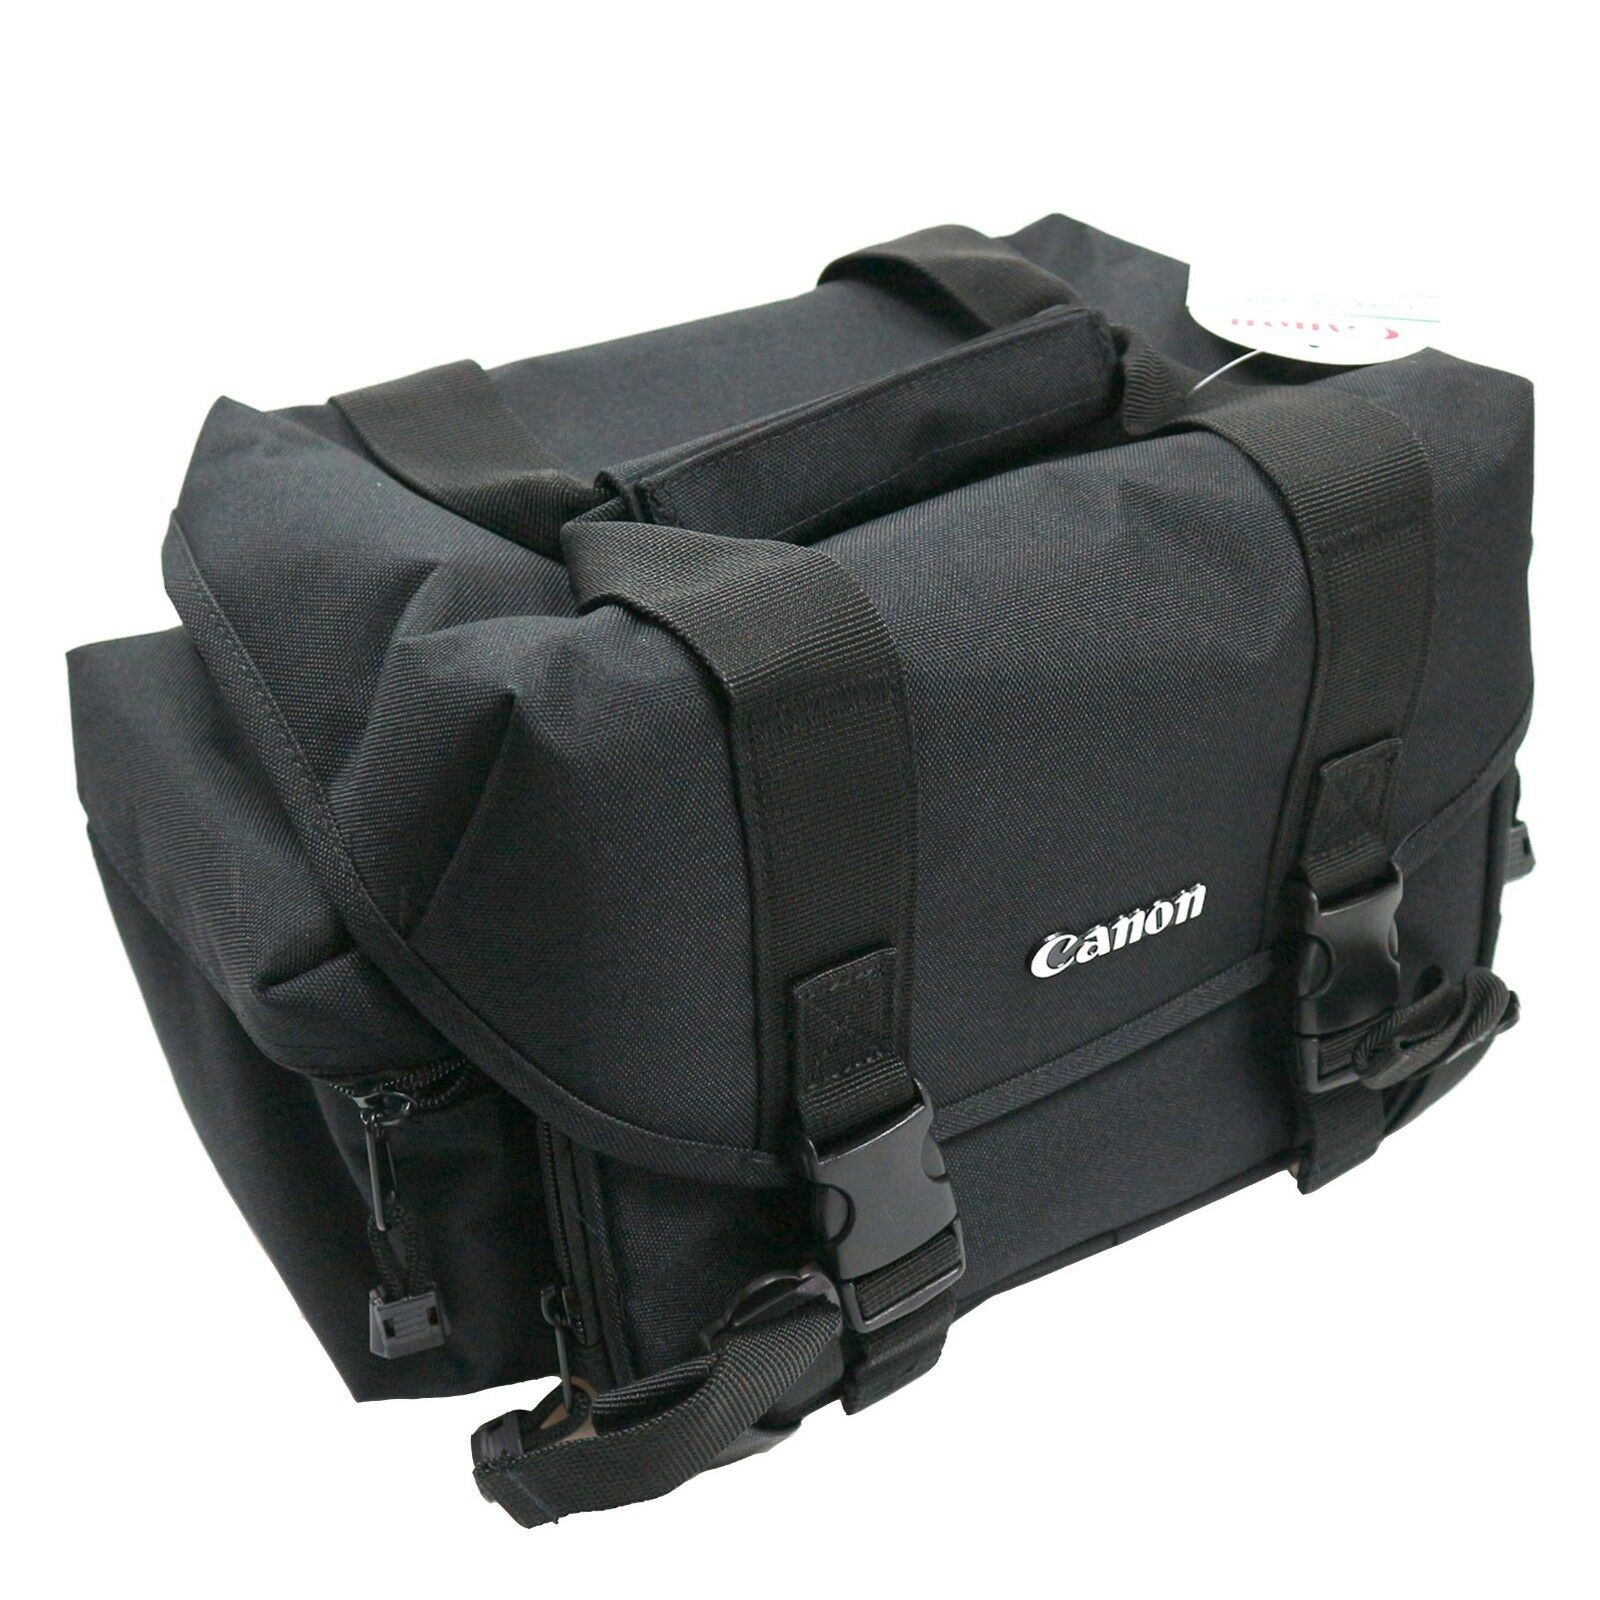 CANON Camera Shoulder Bag NO 2400 Camera Gadget Bag Camera A